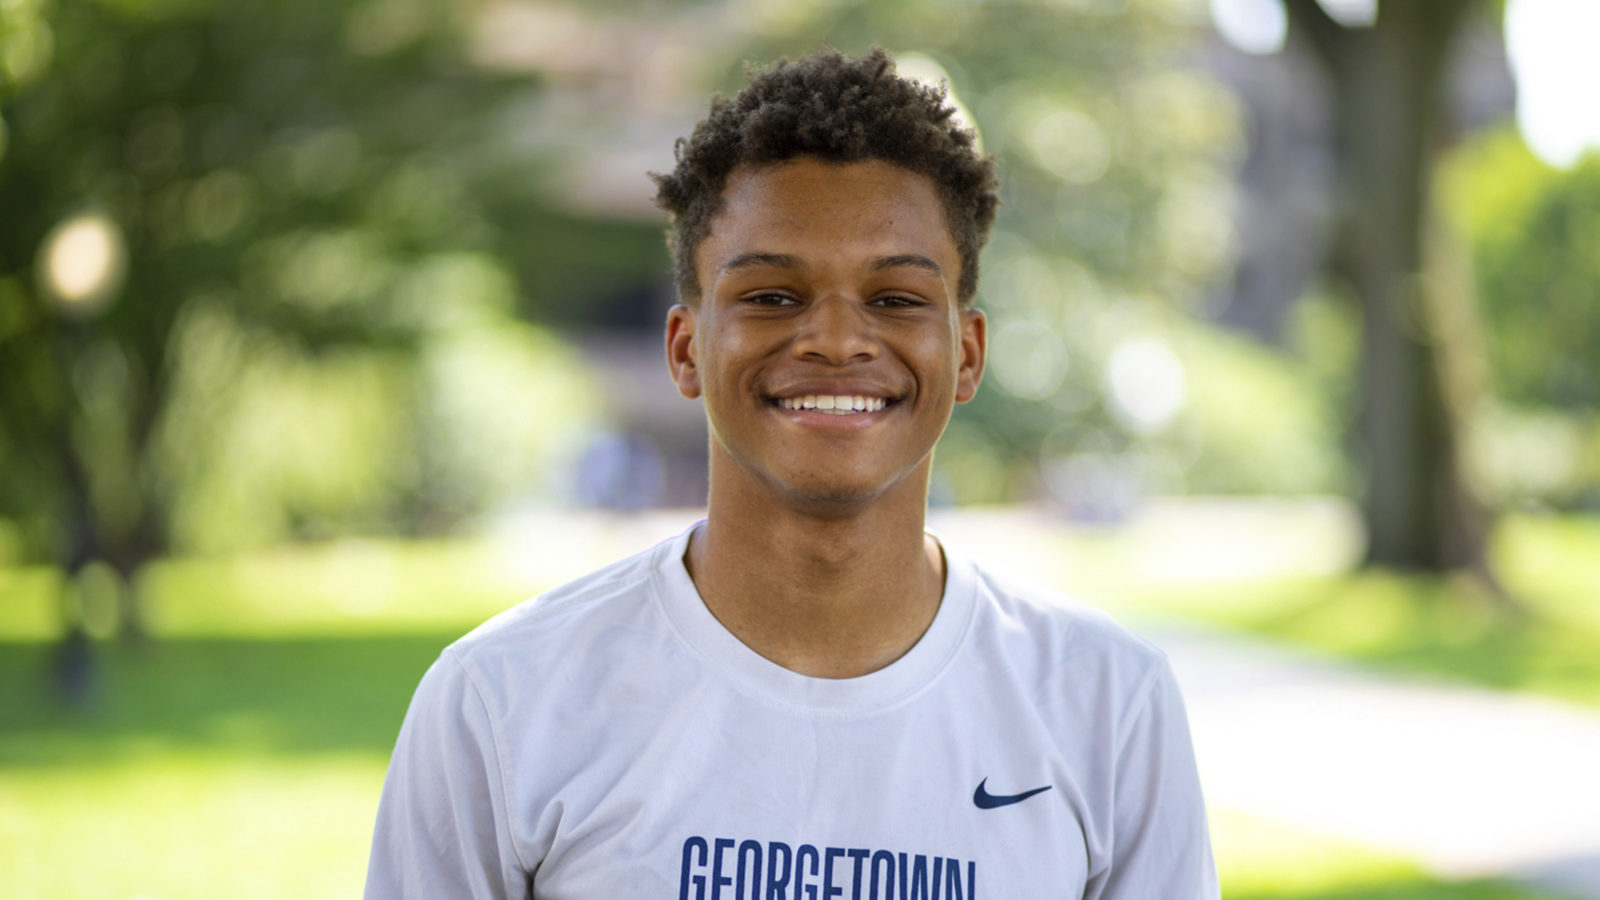 Josiah Laney wearing a Georgetown track and field T-shirt